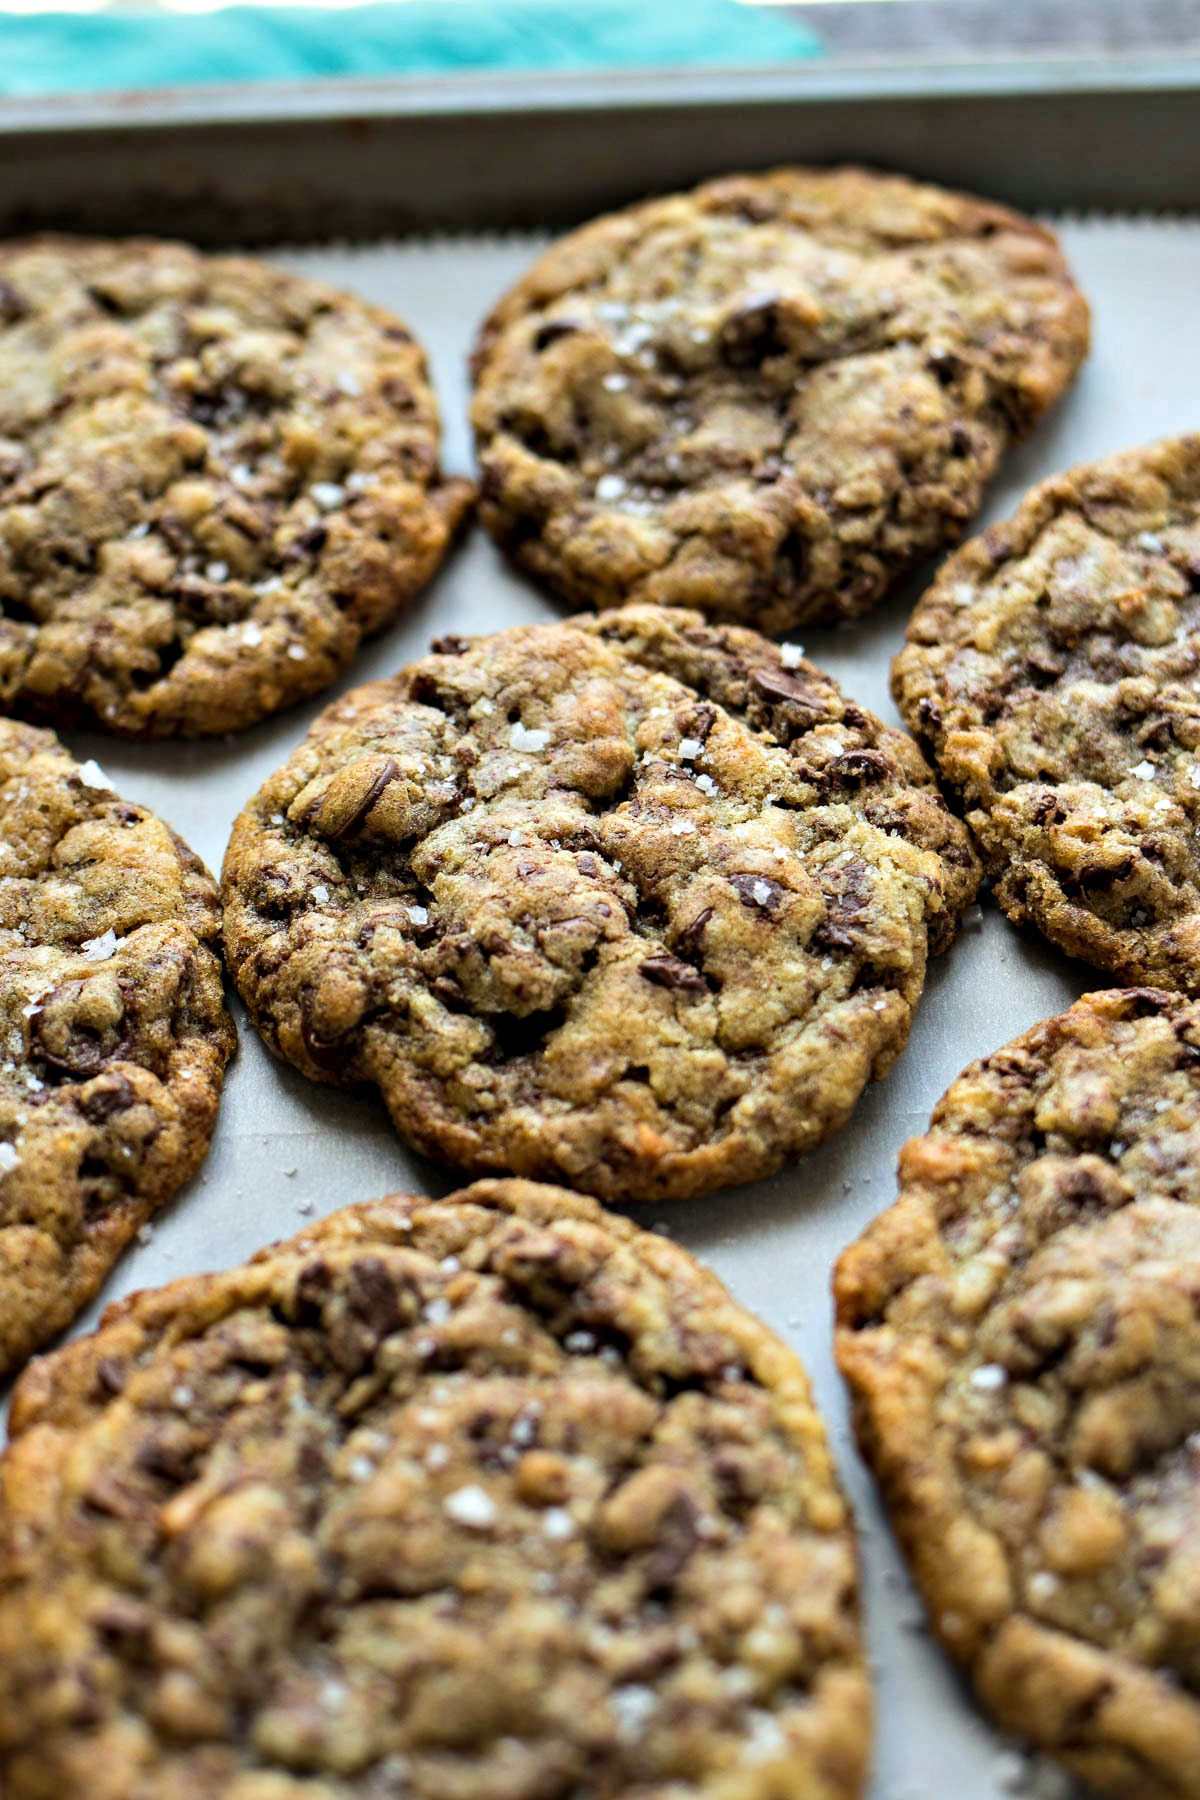 Tray of Sea Salt Toffee Chocolate Chip Cookies